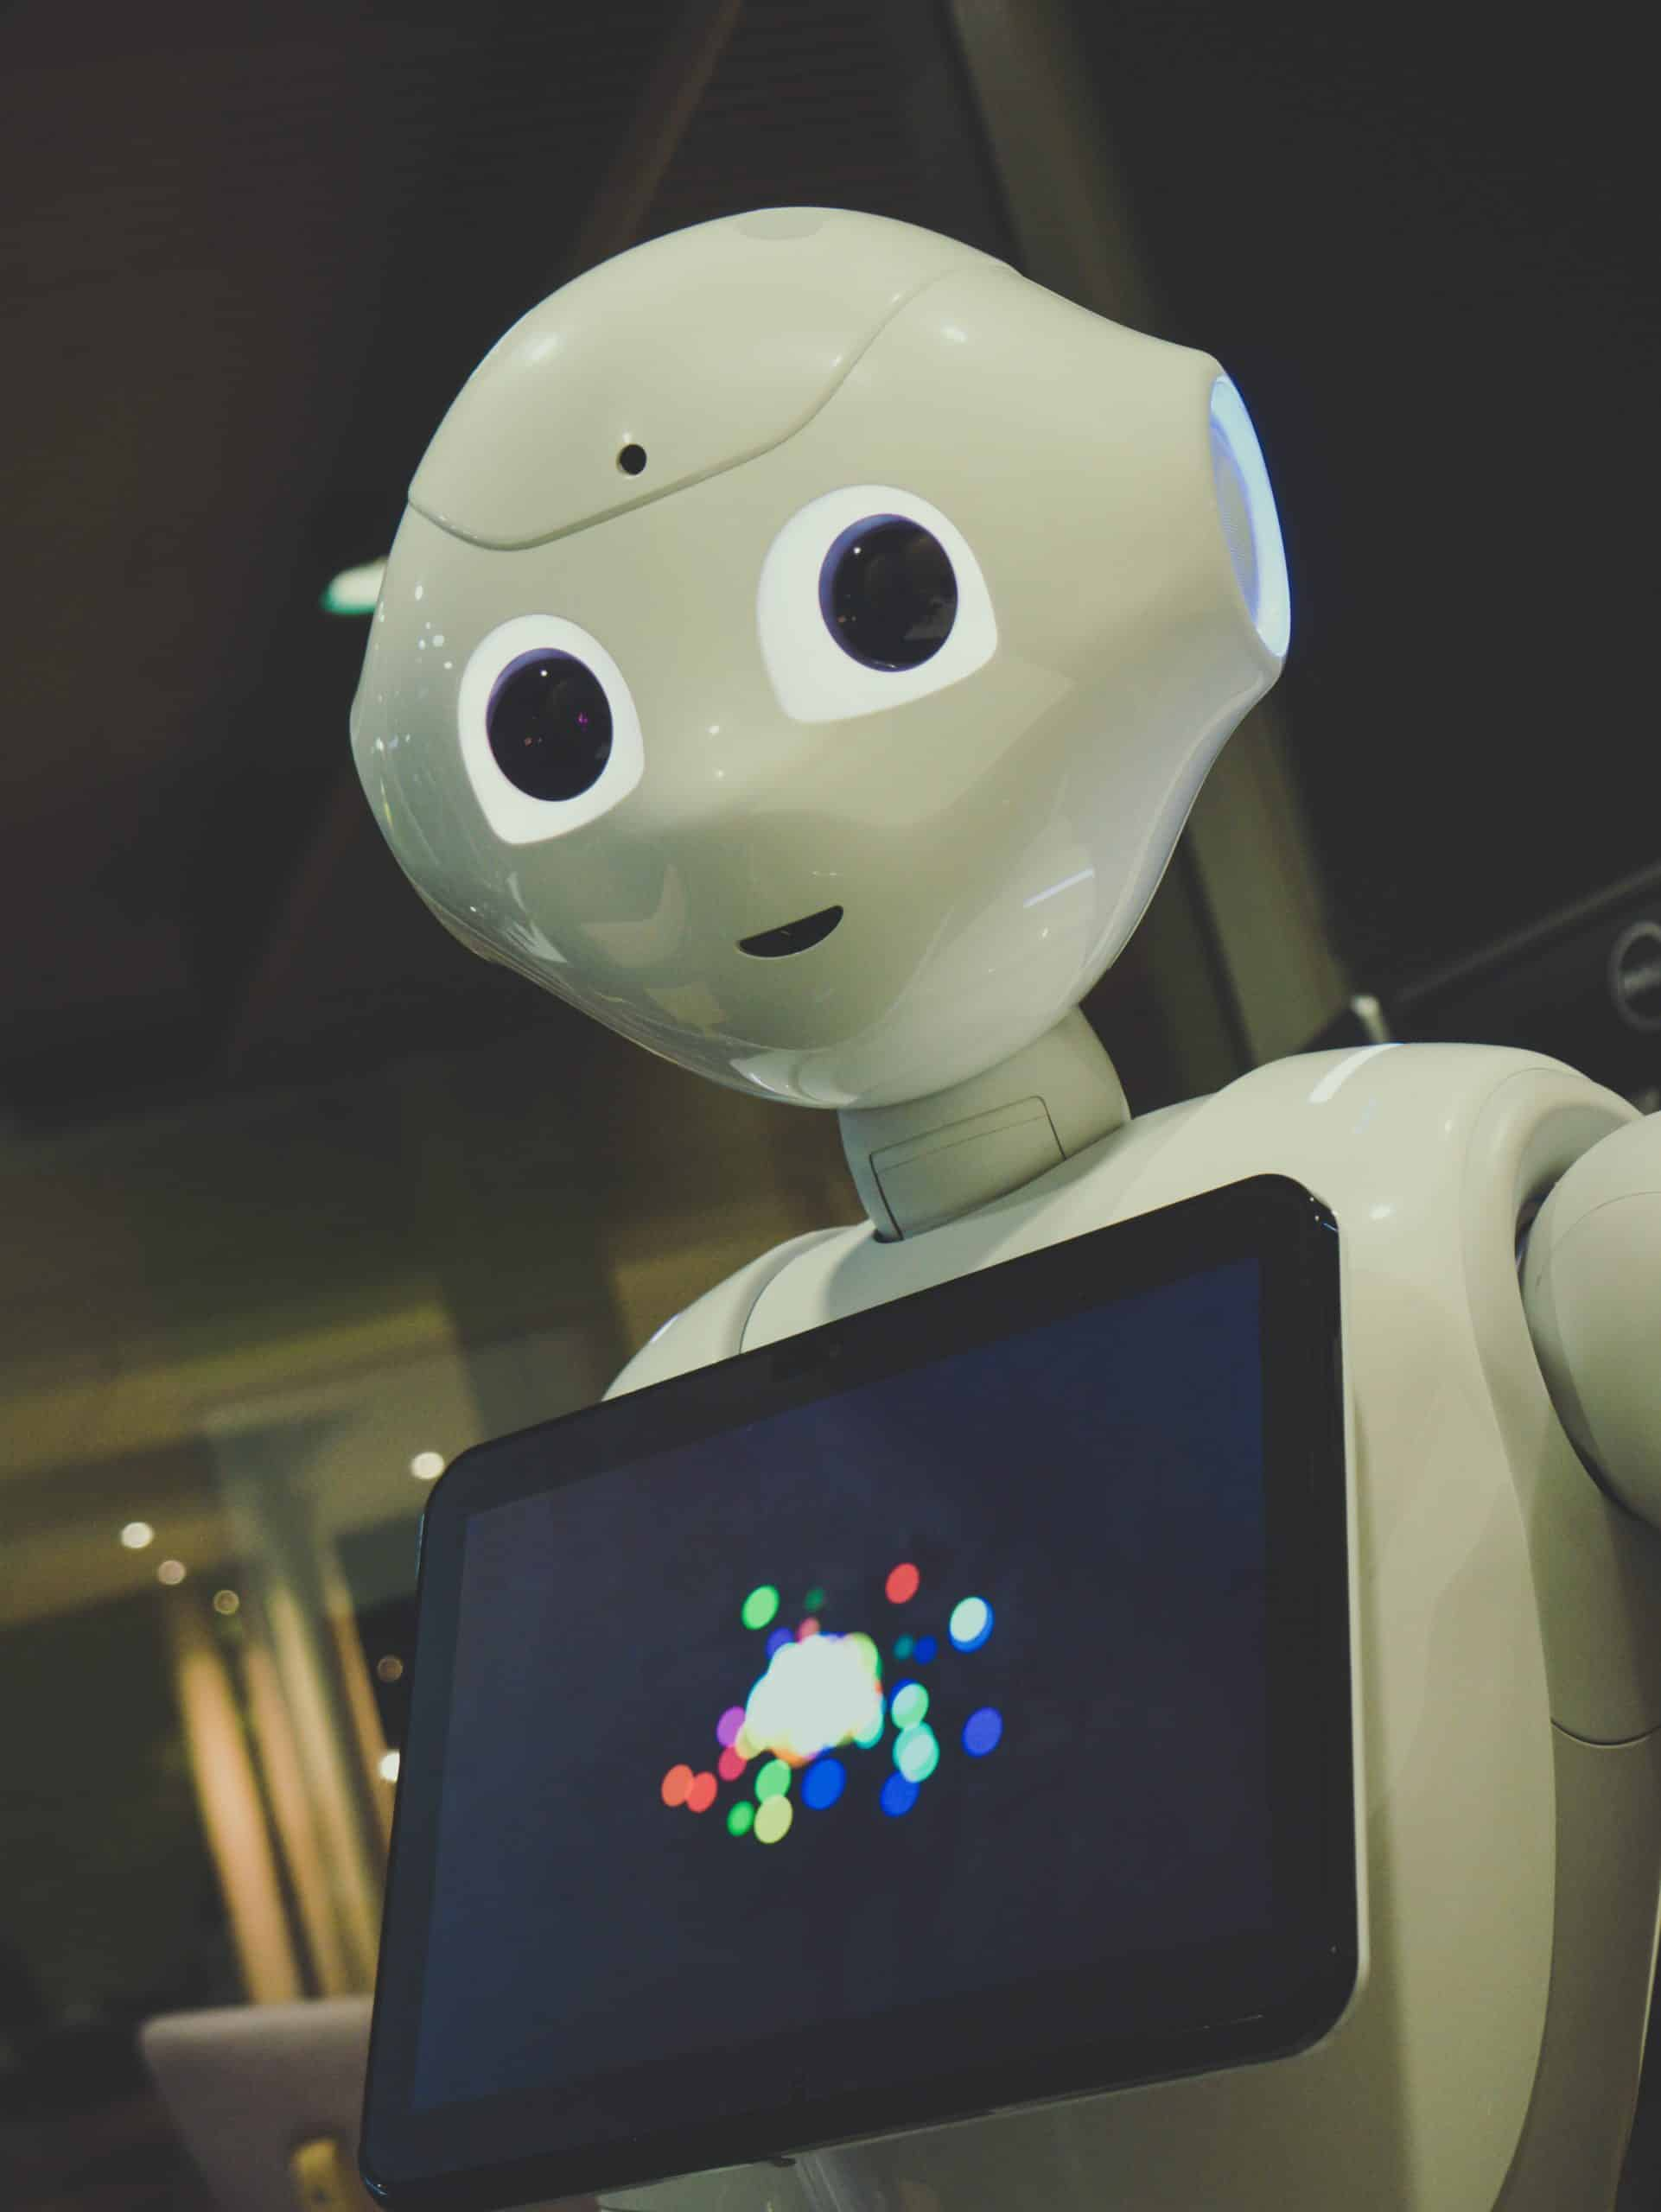 A robot with a touch screen interface on its chest. This symbolizes the future of work.